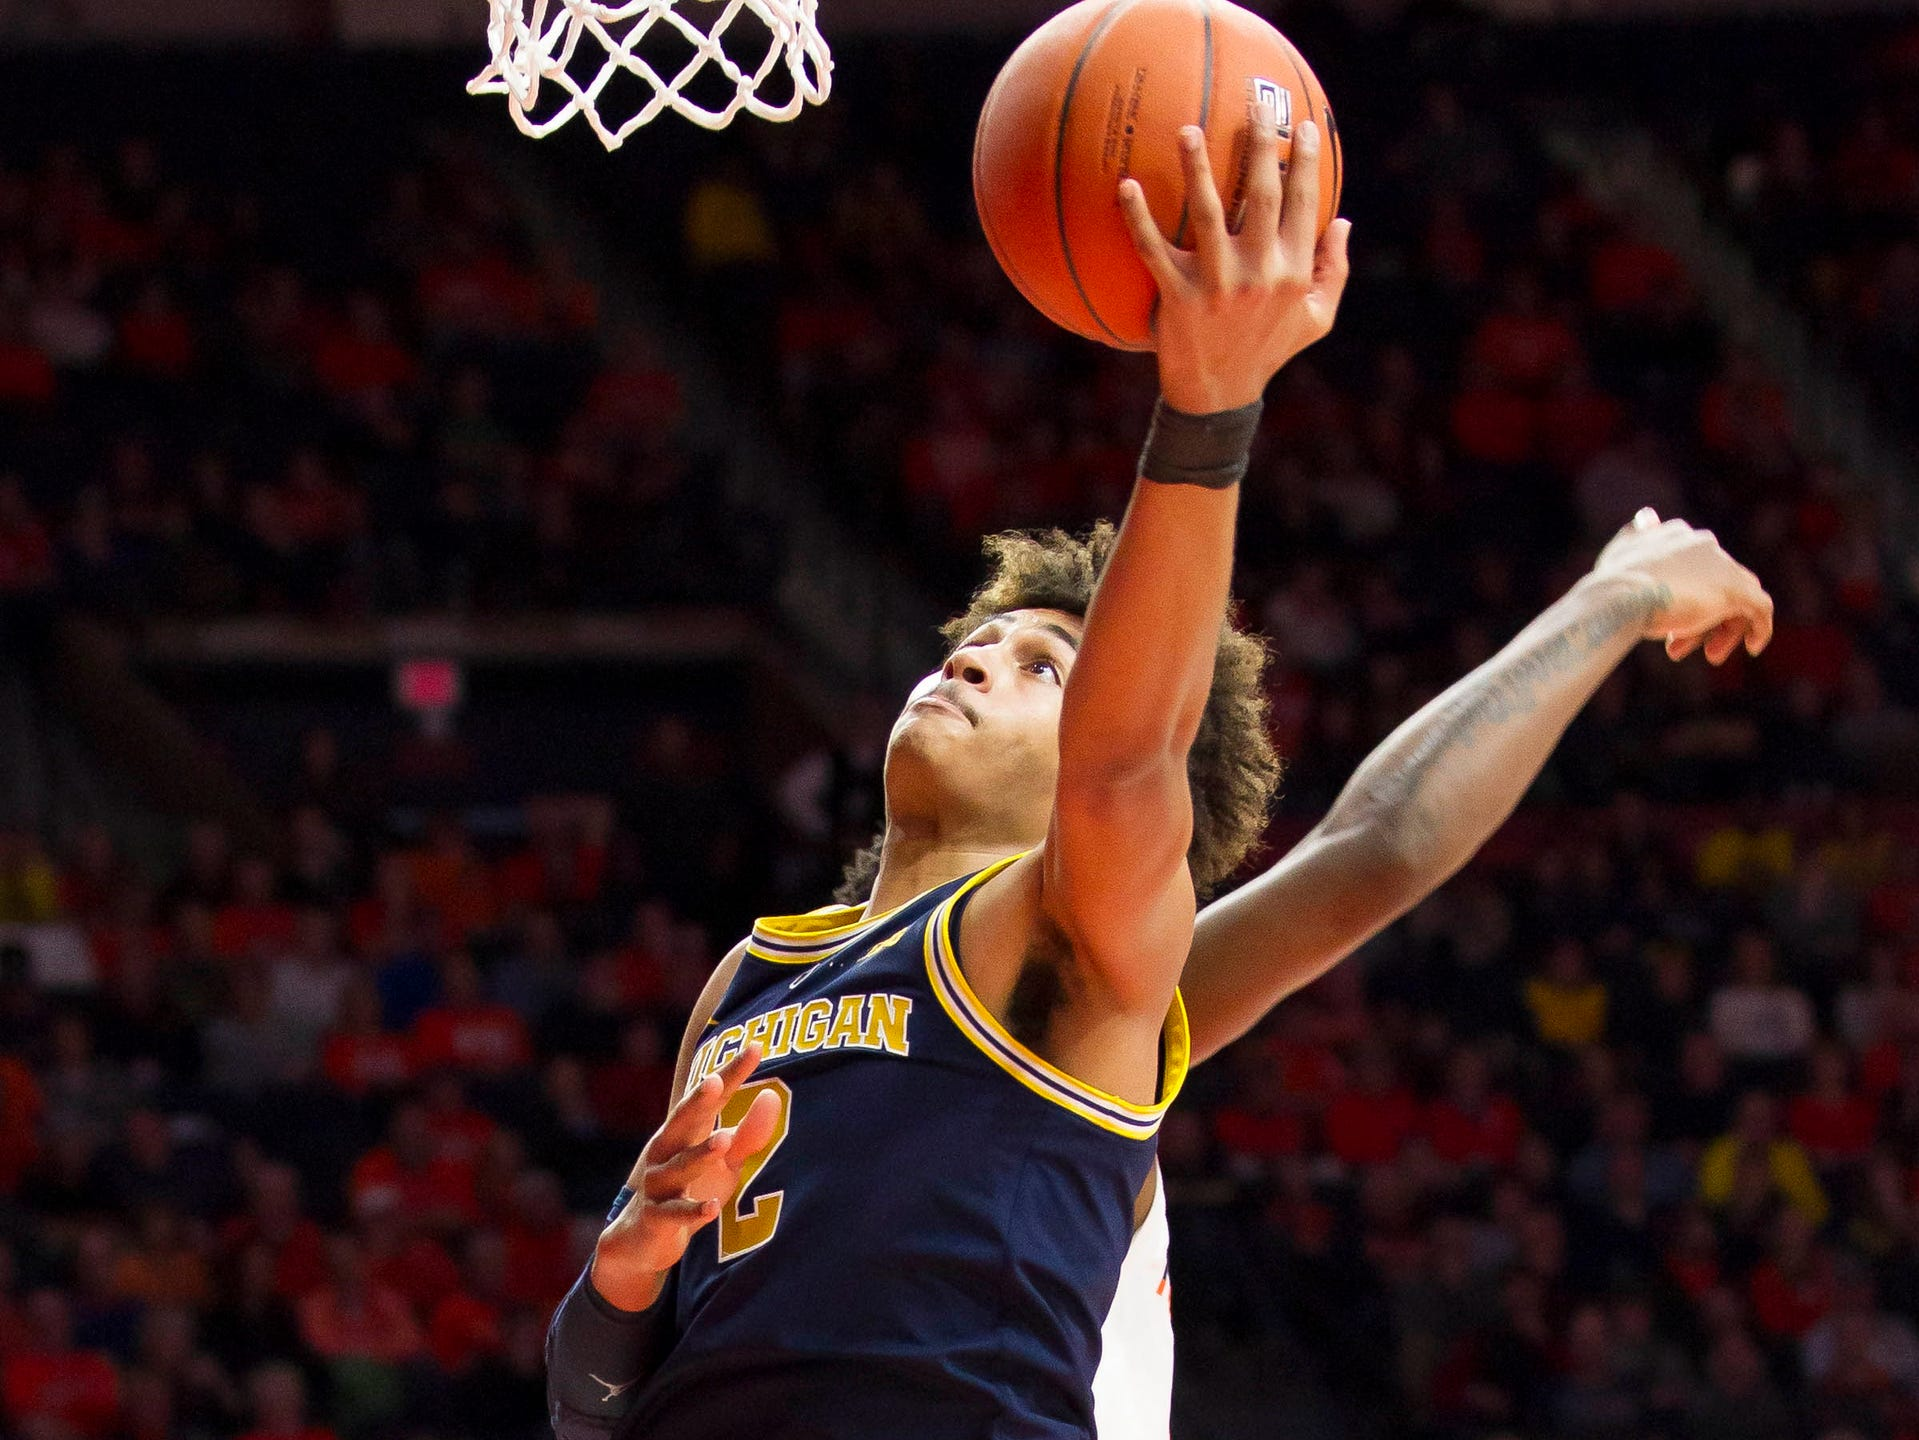 Michigan guard Jordan Poole shoots defended by Illinois guard Ayo Dosunmu during the second half of U-M's 79-69 win on Thursday, Jan. 10, 2019, in Champaign, Ill.